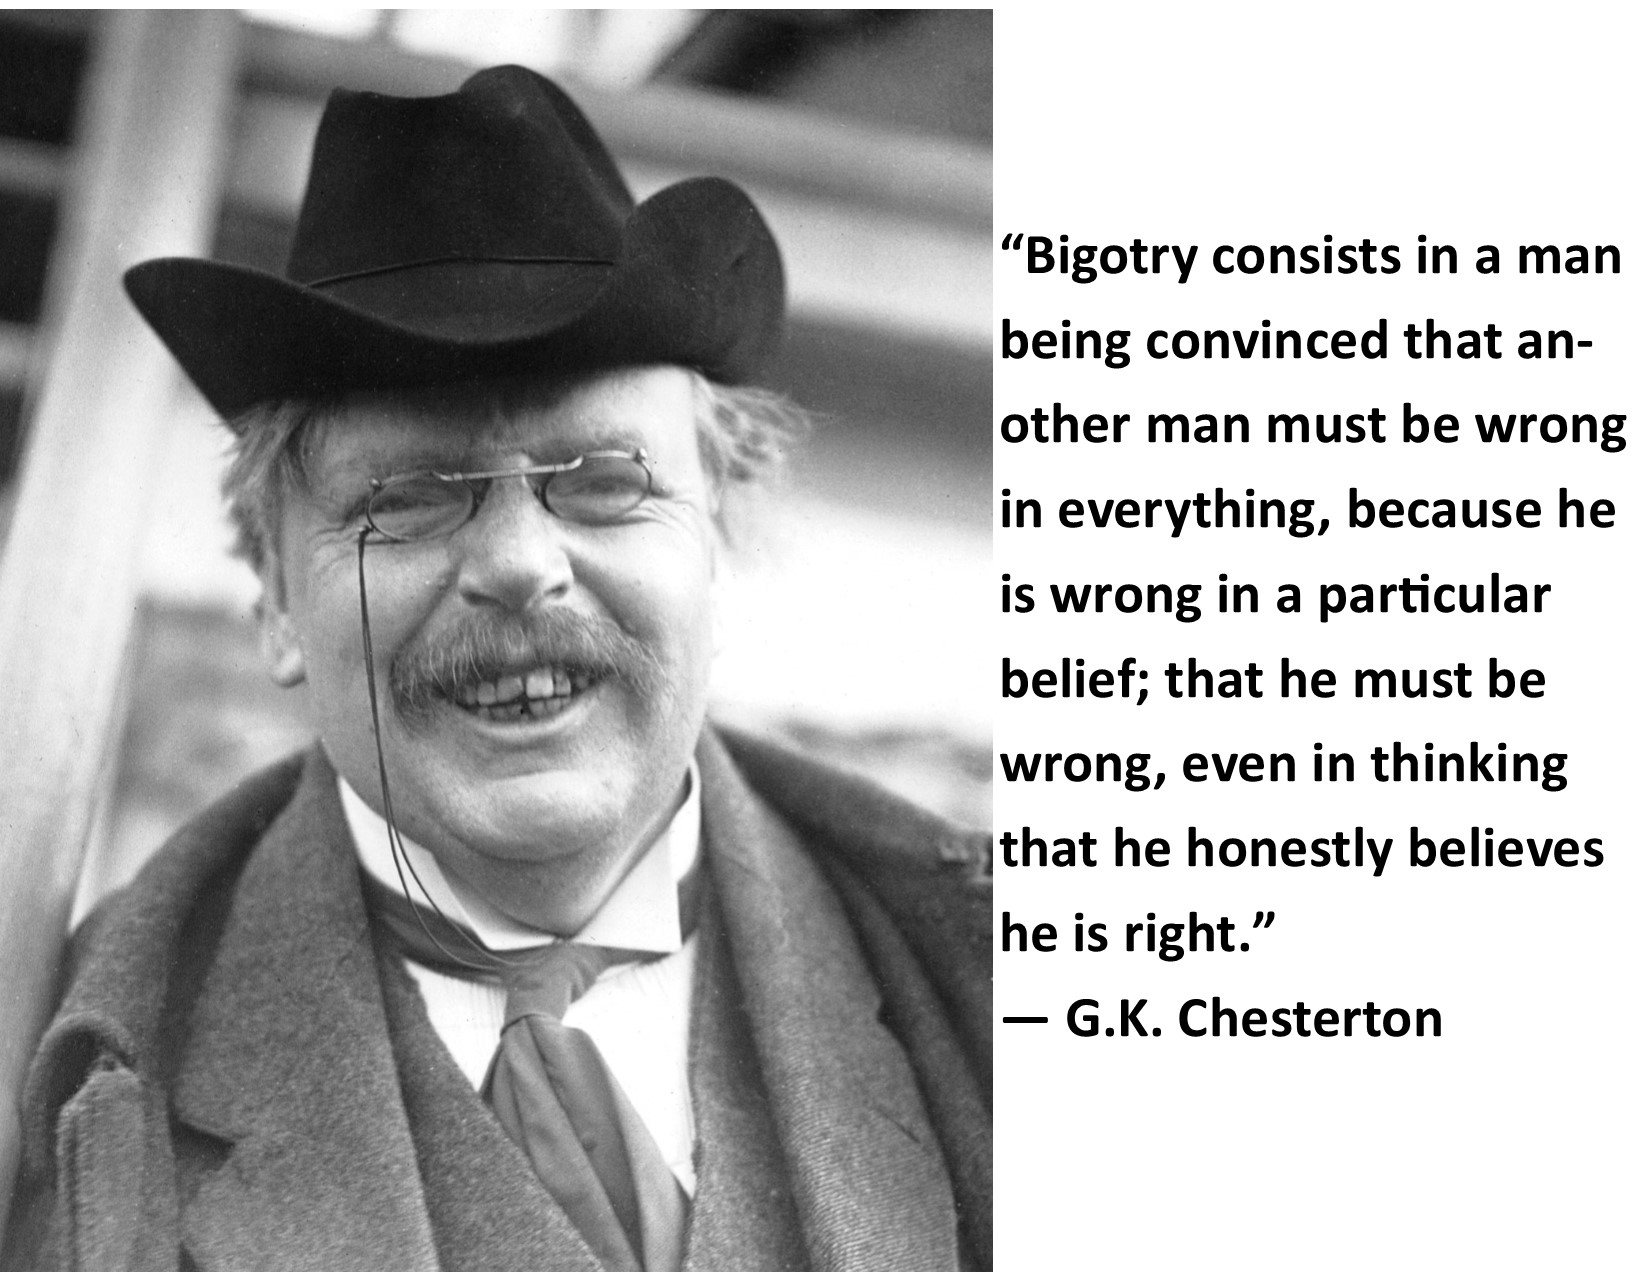 """Bigotry consists in a man being convinced that another man must be wrong in everything, because he is wrong in a particular belief; that he must be wrong, even in thinking that he honestly believes he is right."" ~G. K, Chesterton [OC] [1650 x 1275]"